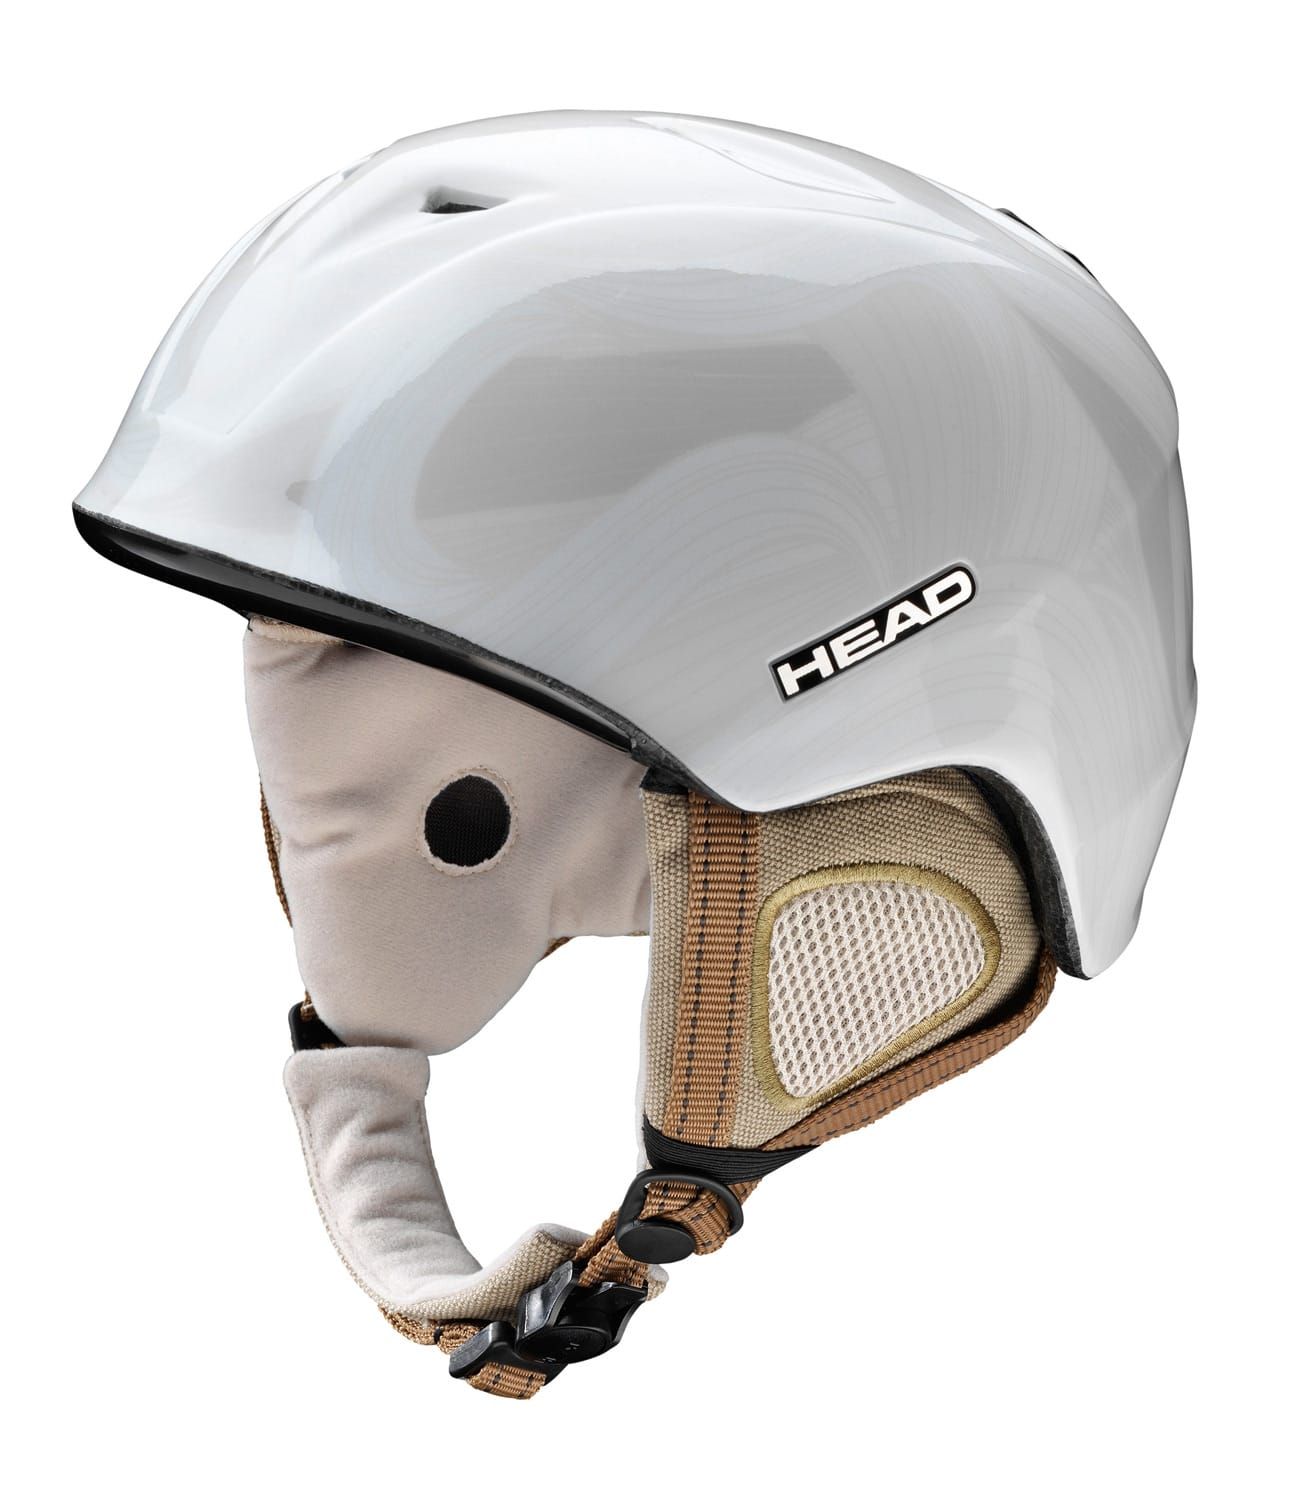 Shop for Head Cloe Audio Snowboard Helmet White - Women's